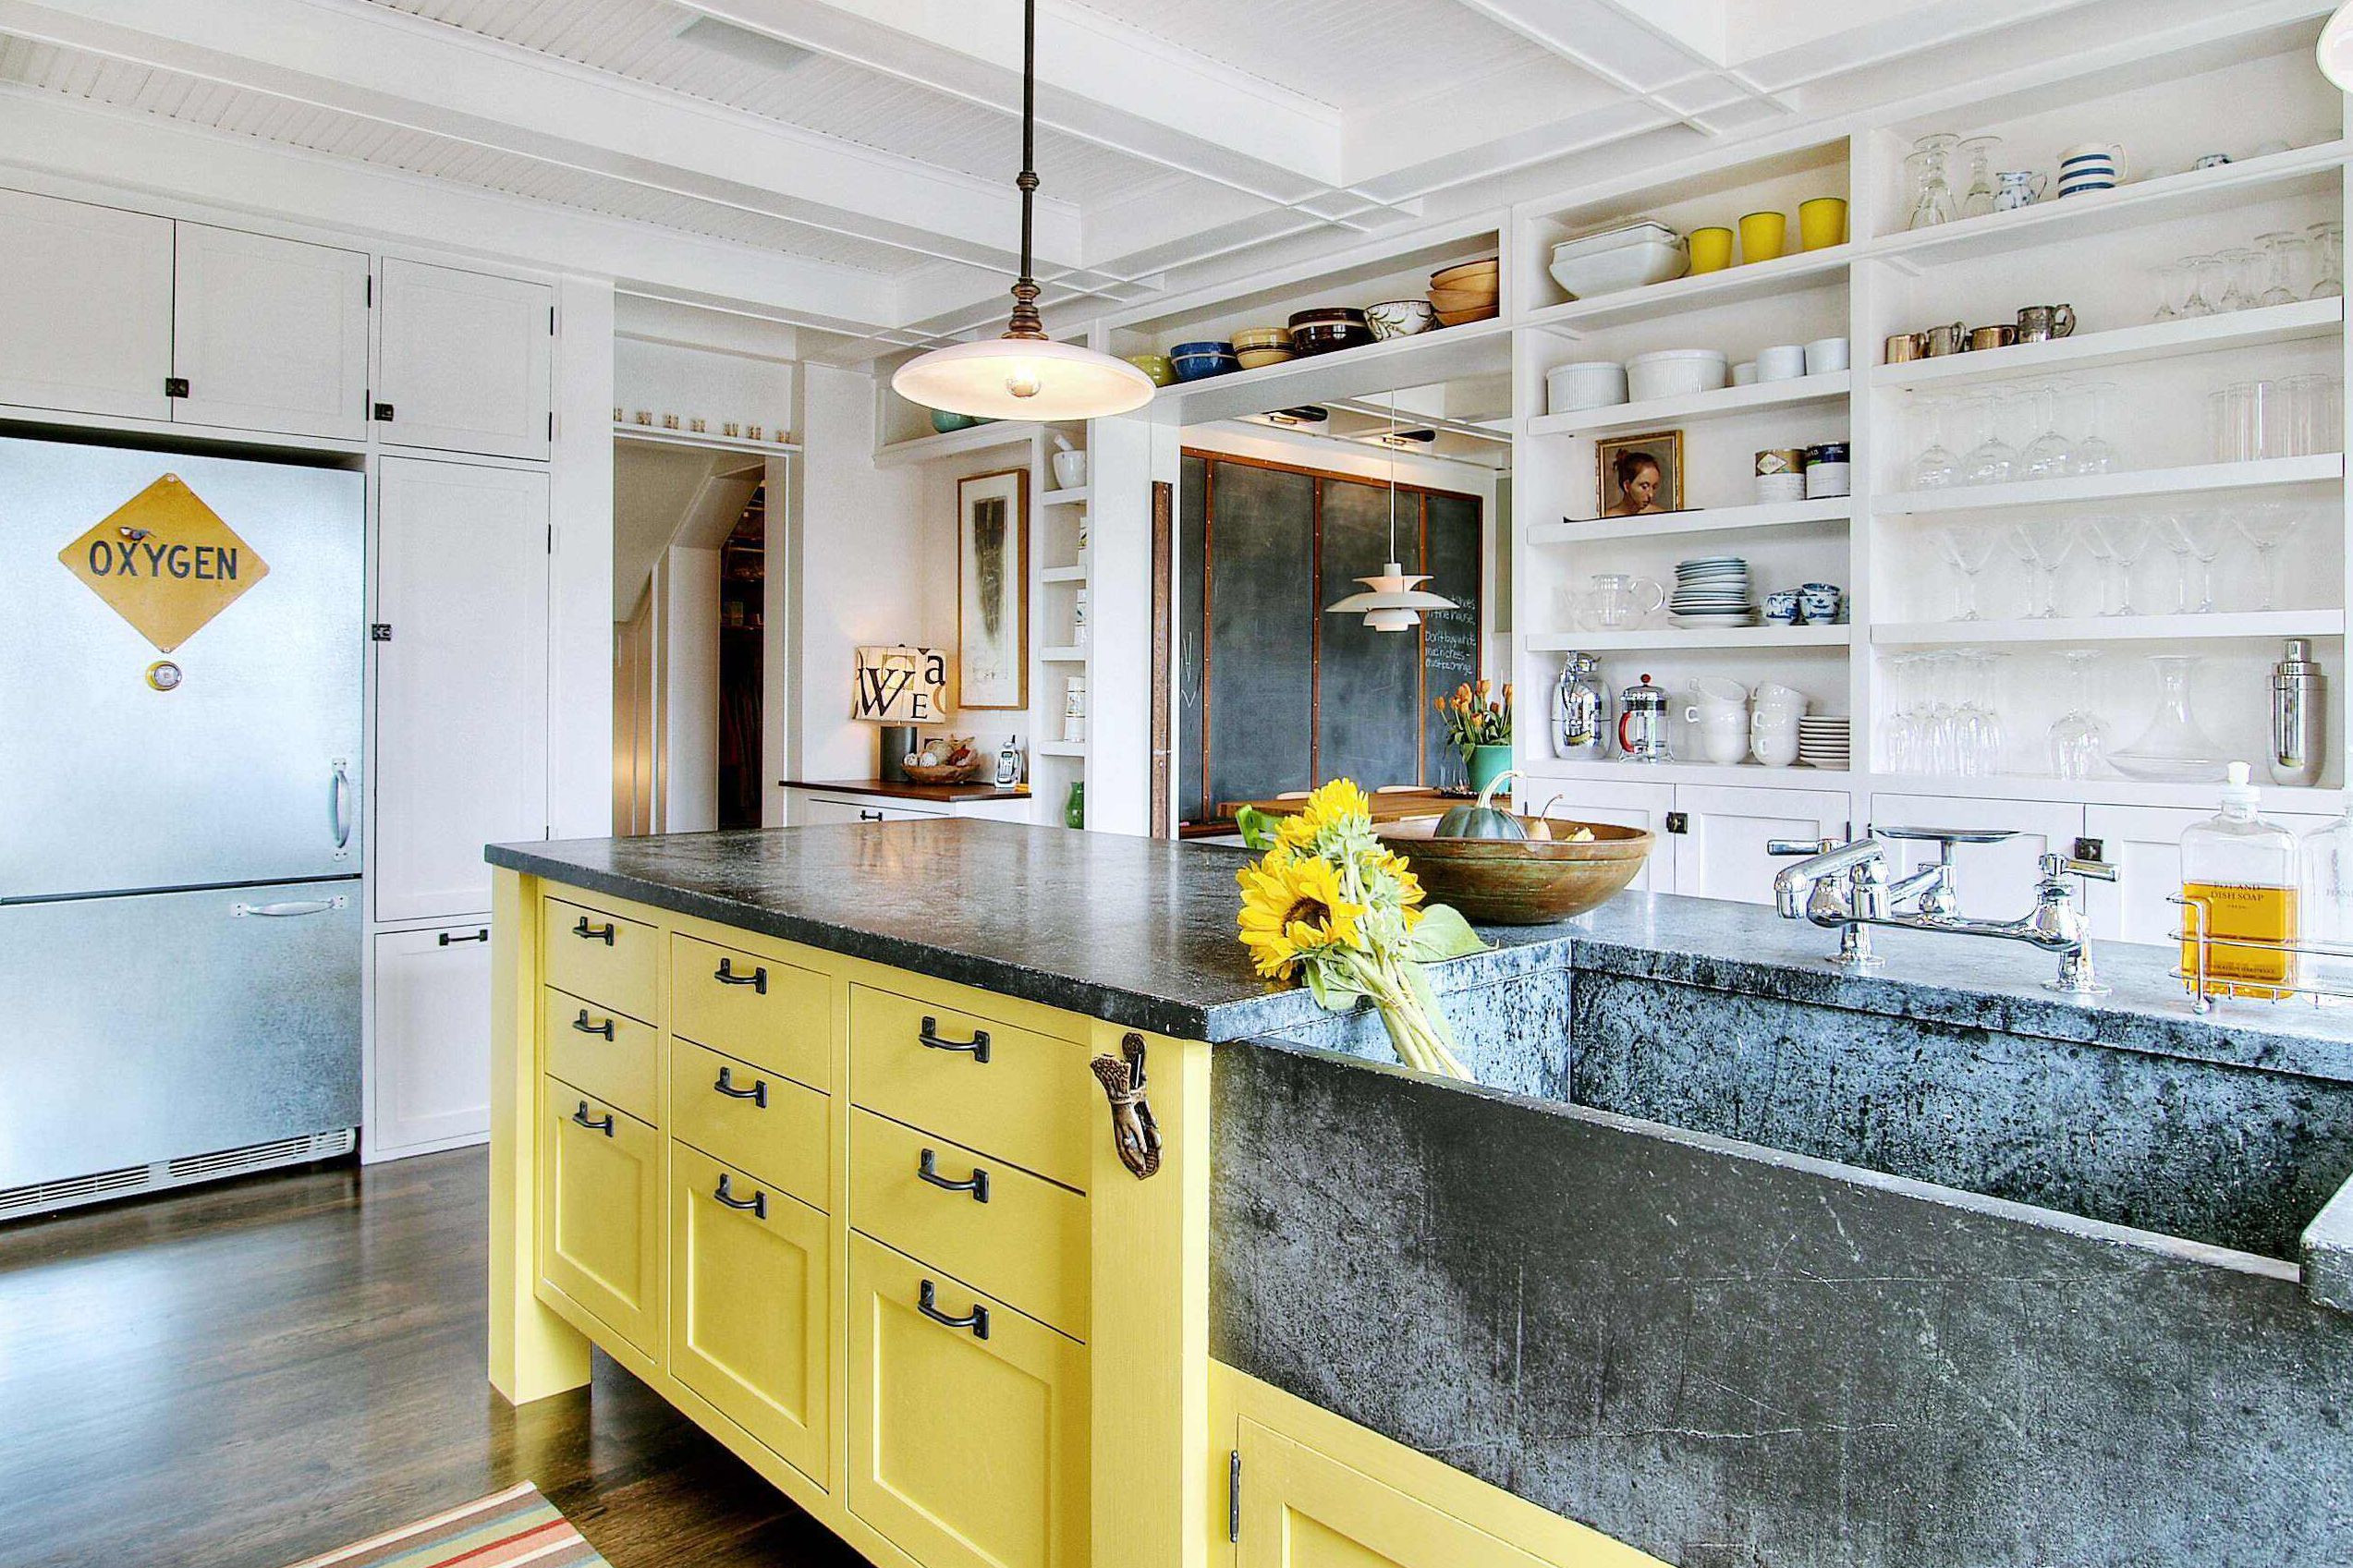 hardwood floor trends 2019 of best kitchen design trends to try in 2018 with regard to fin stone sinks decor trends 2018 5a1345fd47c266003779364e